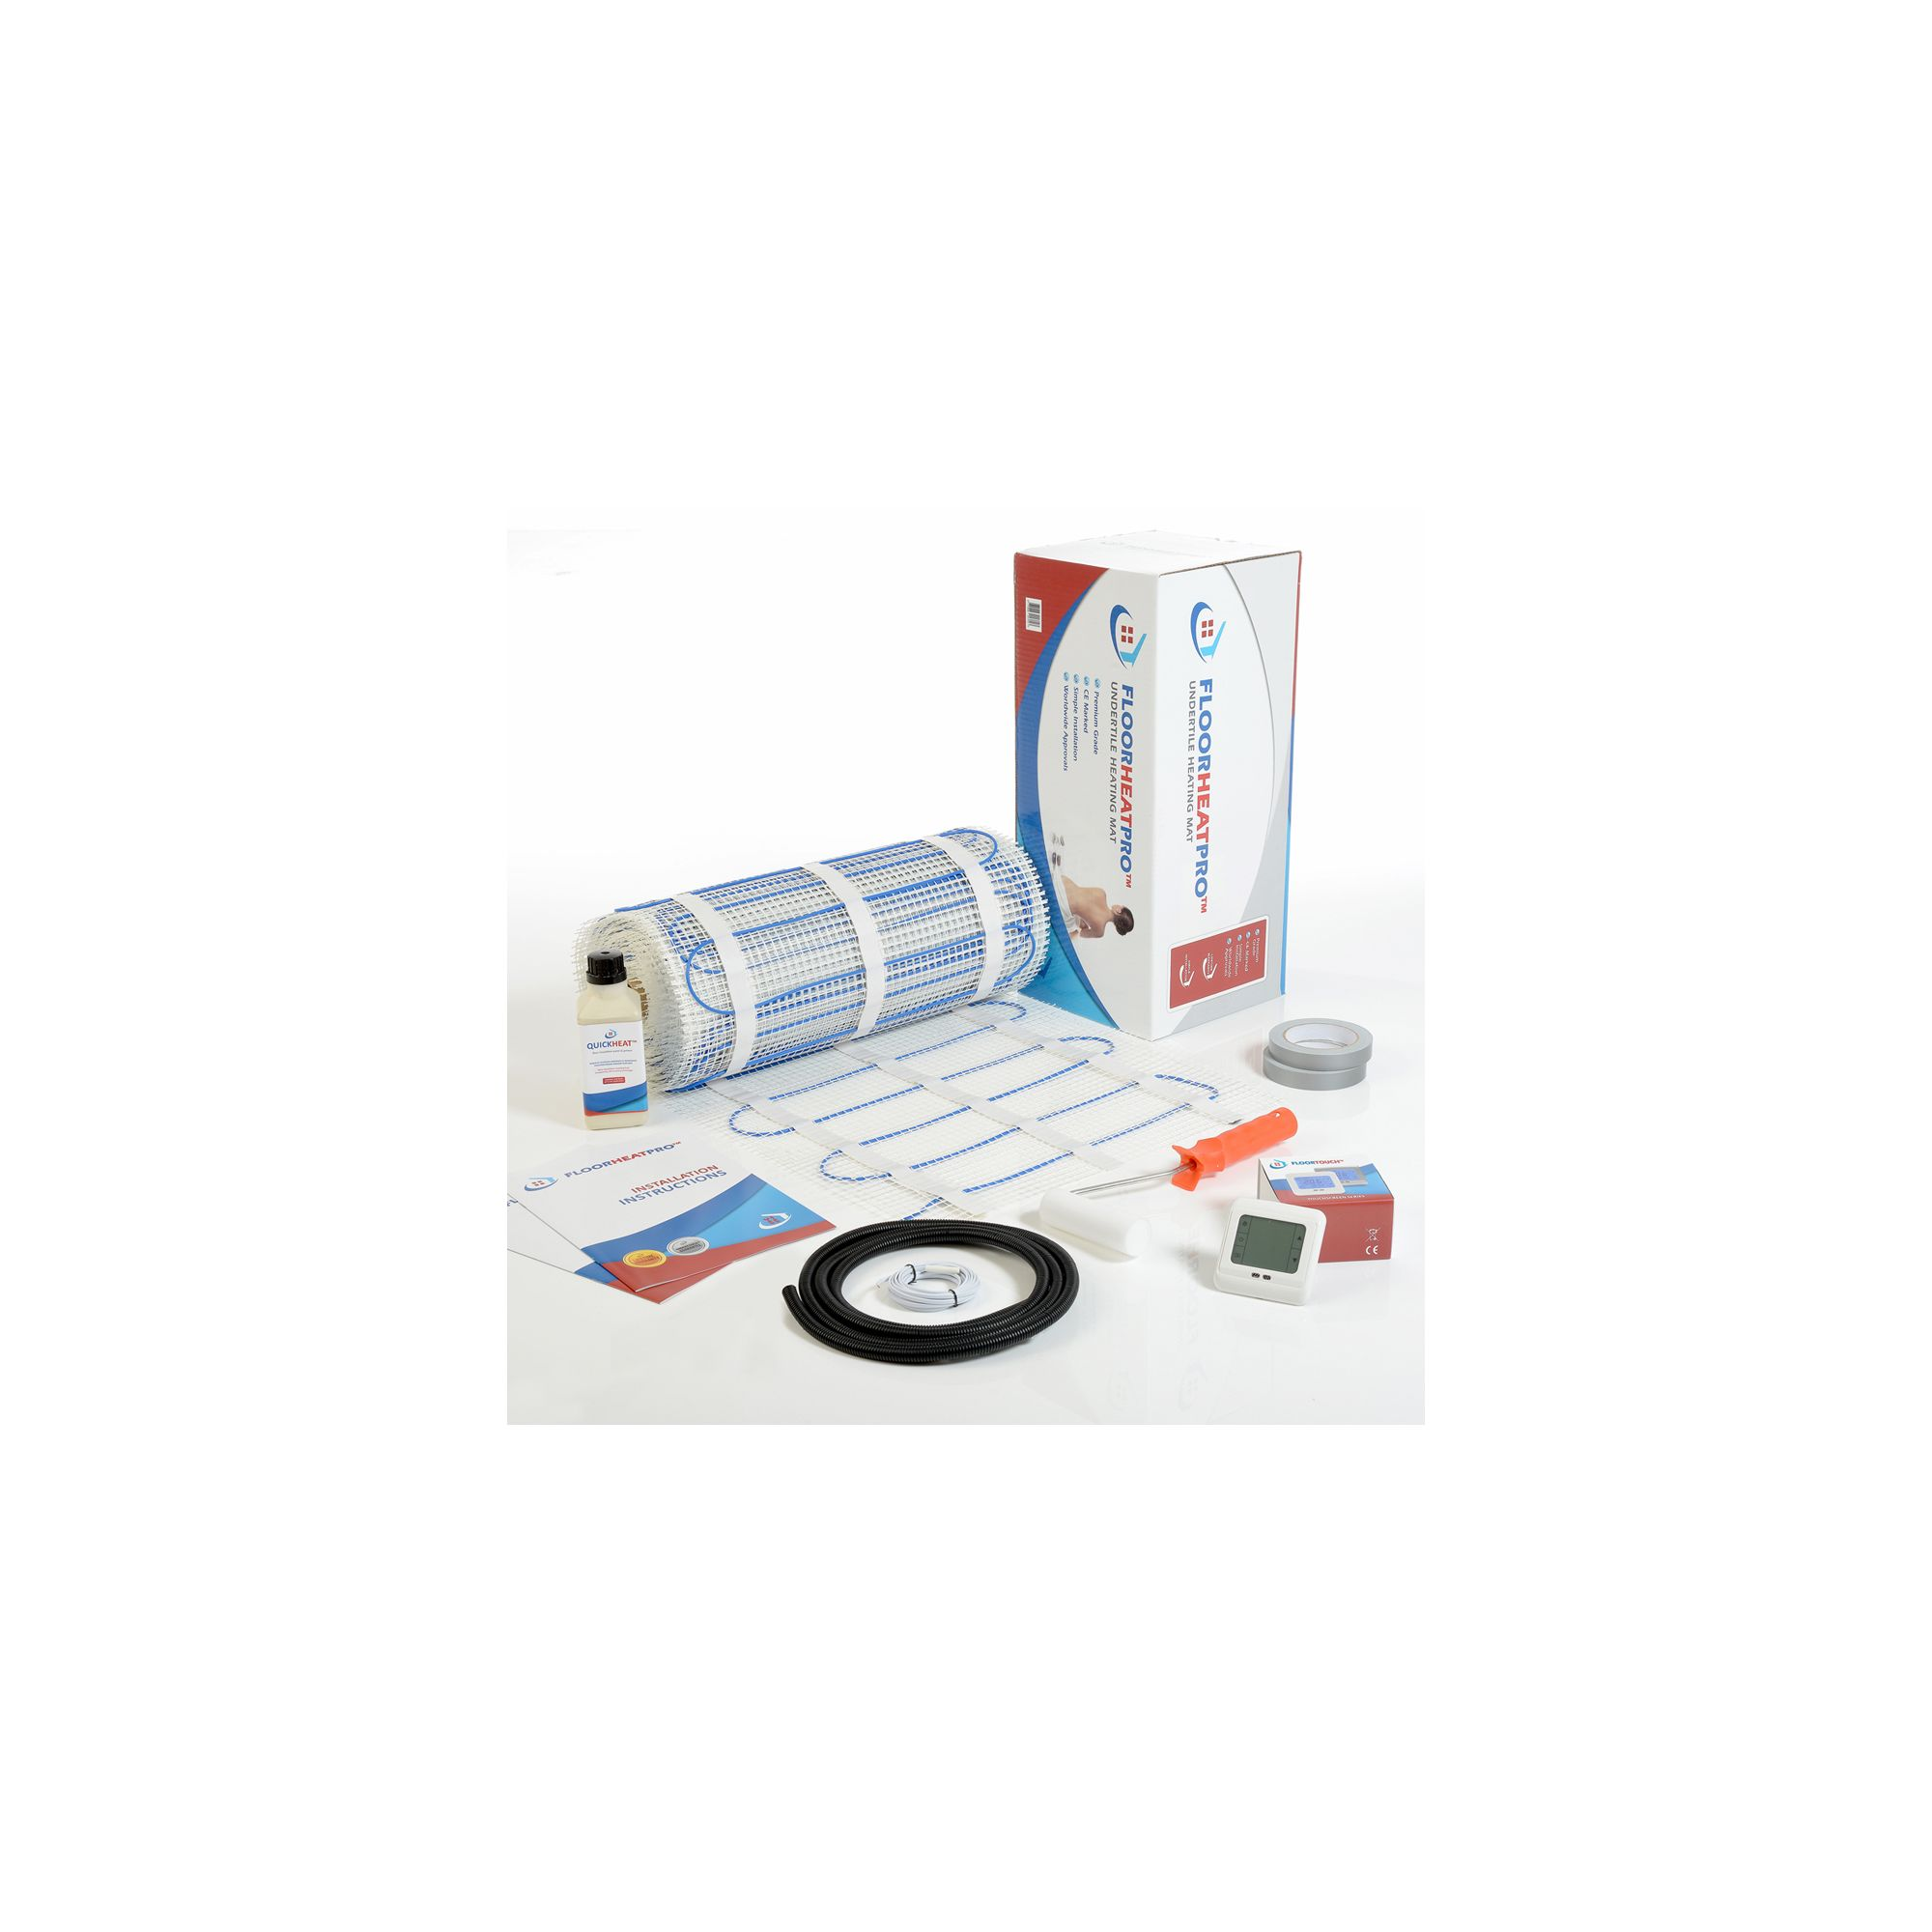 15.0m2 - Underfloor Electric Heating Kit 200w/m2 - Tiles at Tesco Direct